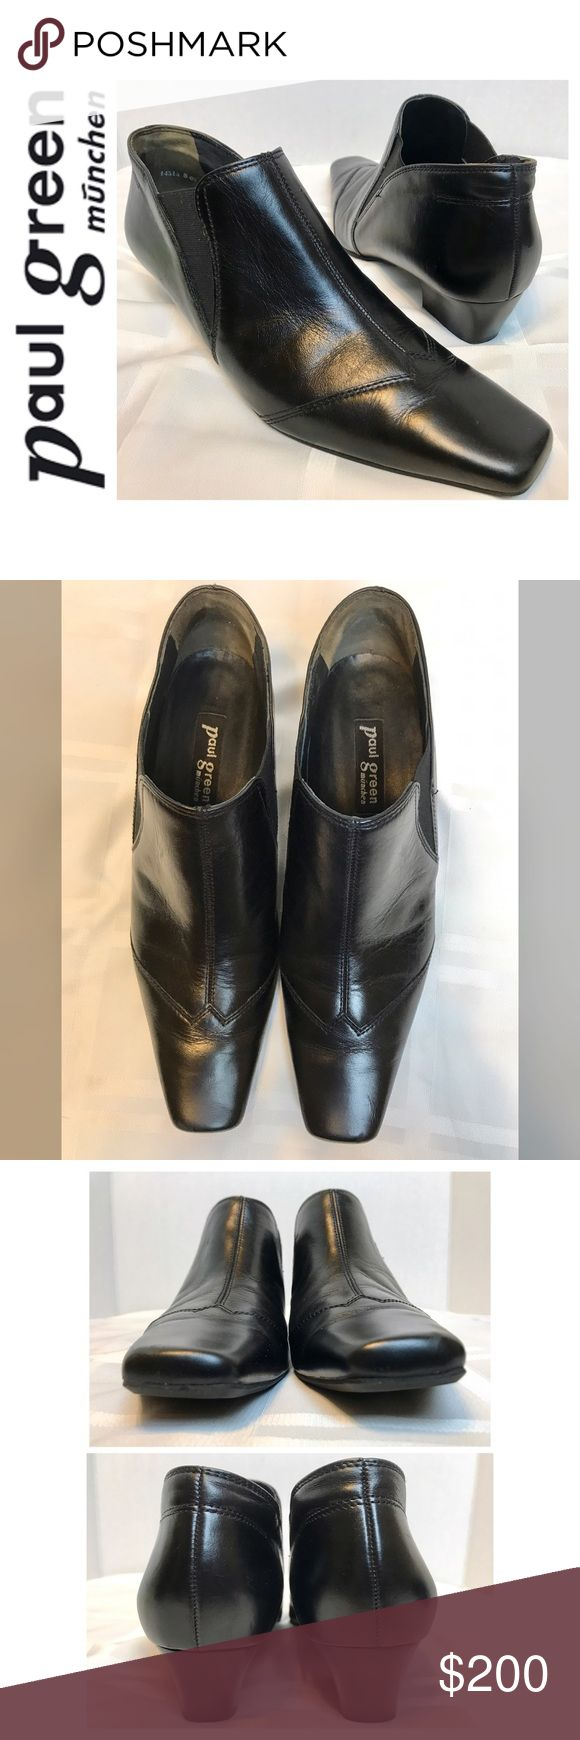 Paul Green Signature Leather Heels Paul Green Signature Leather Heels in Classic Black, Handmade in Austria, Size 5 Tag but Fits a Size 7 1/2, Used in Excellent Mint Condition Paul Green Shoes Heels